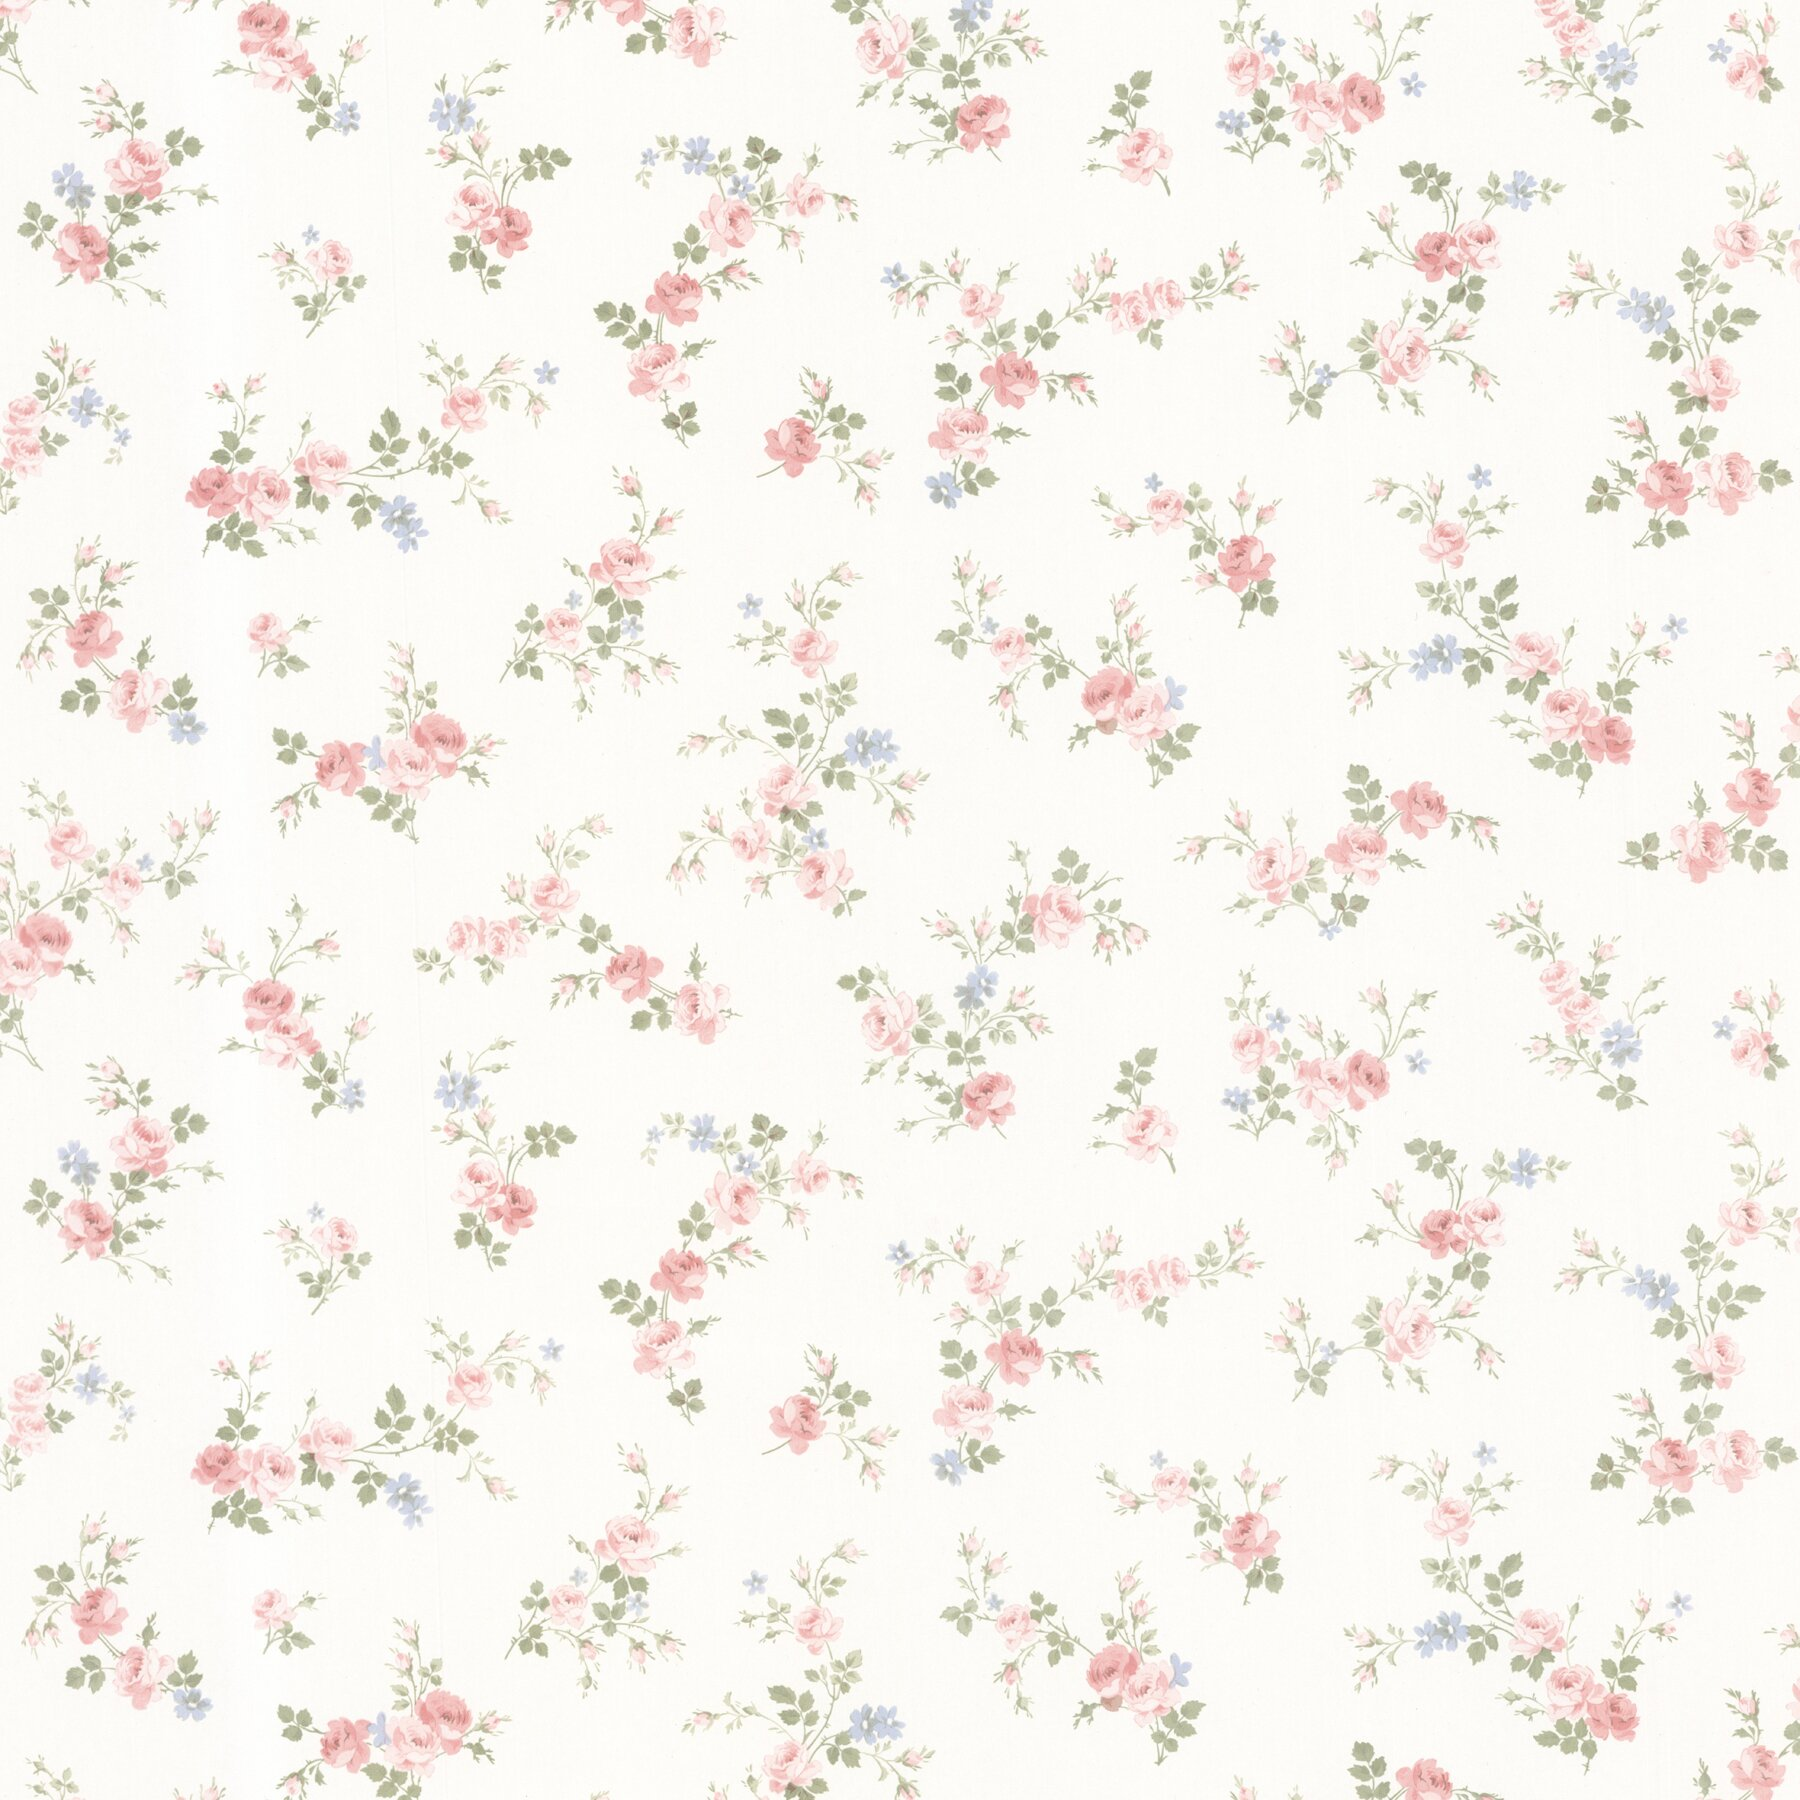 "Dollhouse Fiona Sprigs 33' X 20.5"" Floral And Botanical 3D"